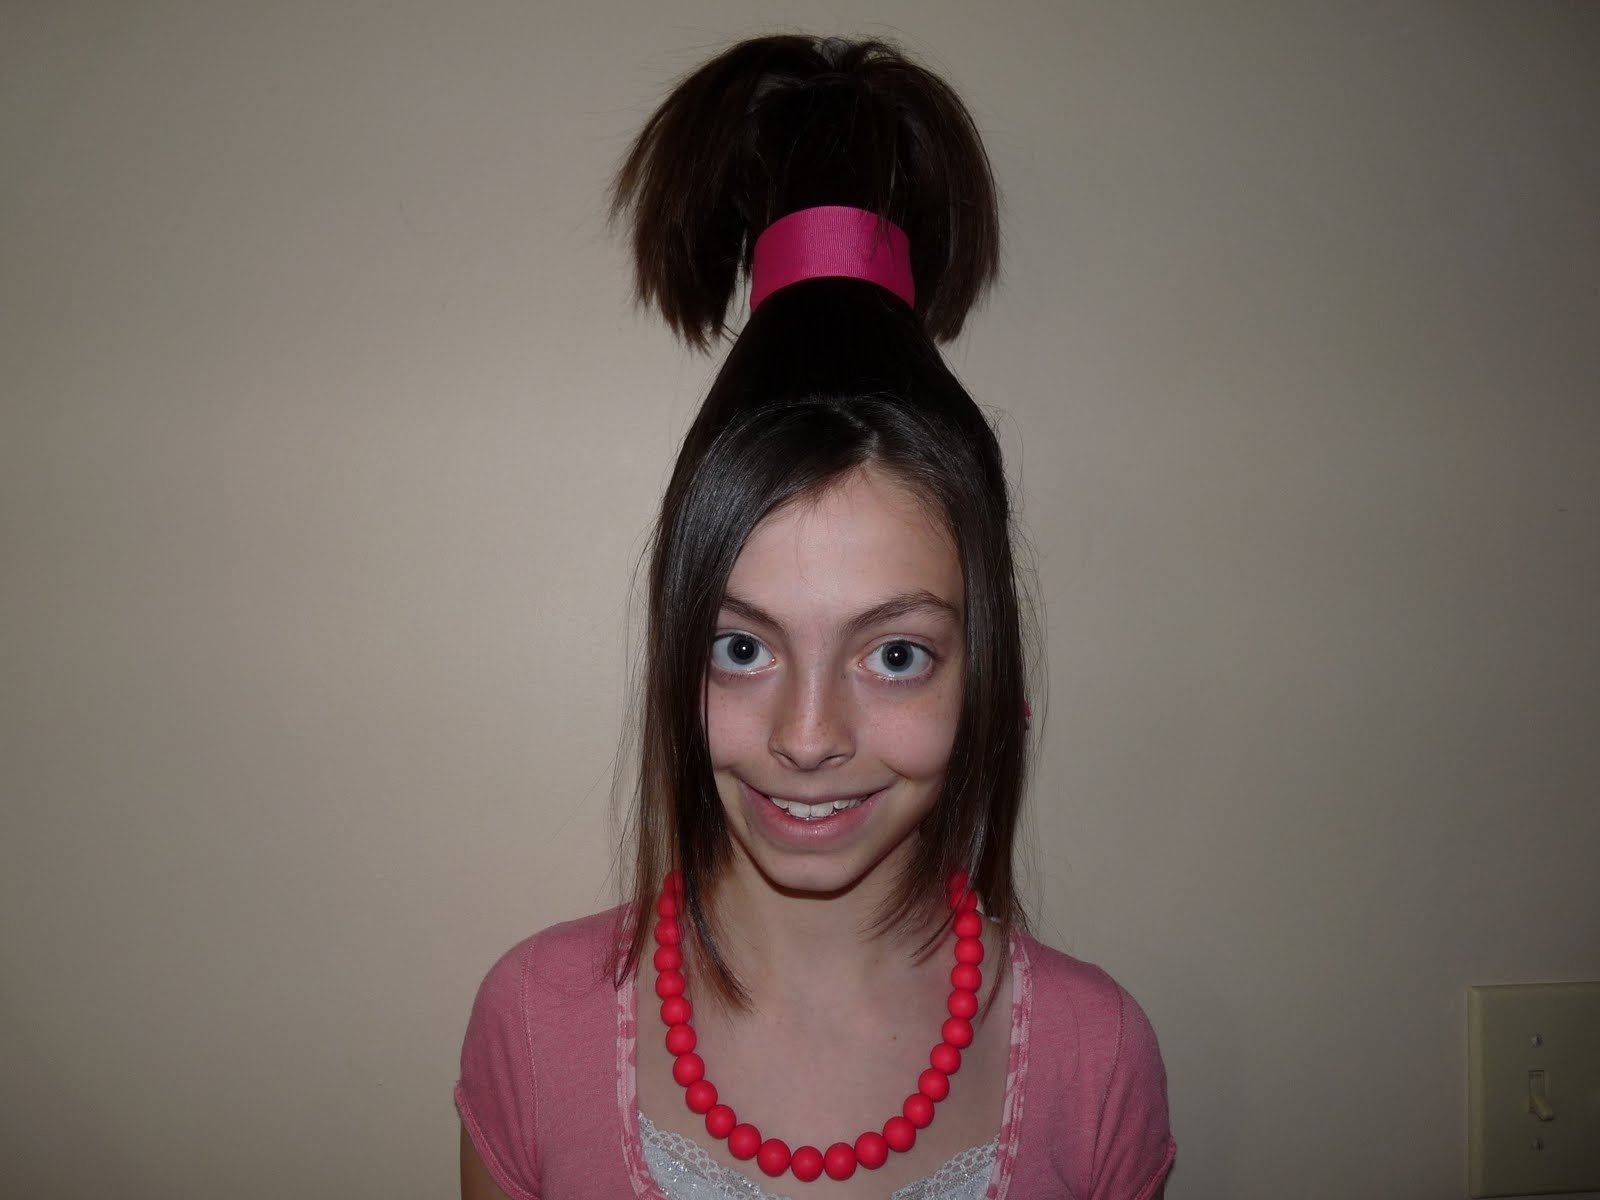 10 Most Recommended Crazy Hair Ideas For School emily had crazy hair day school she decided use sarah idea medium